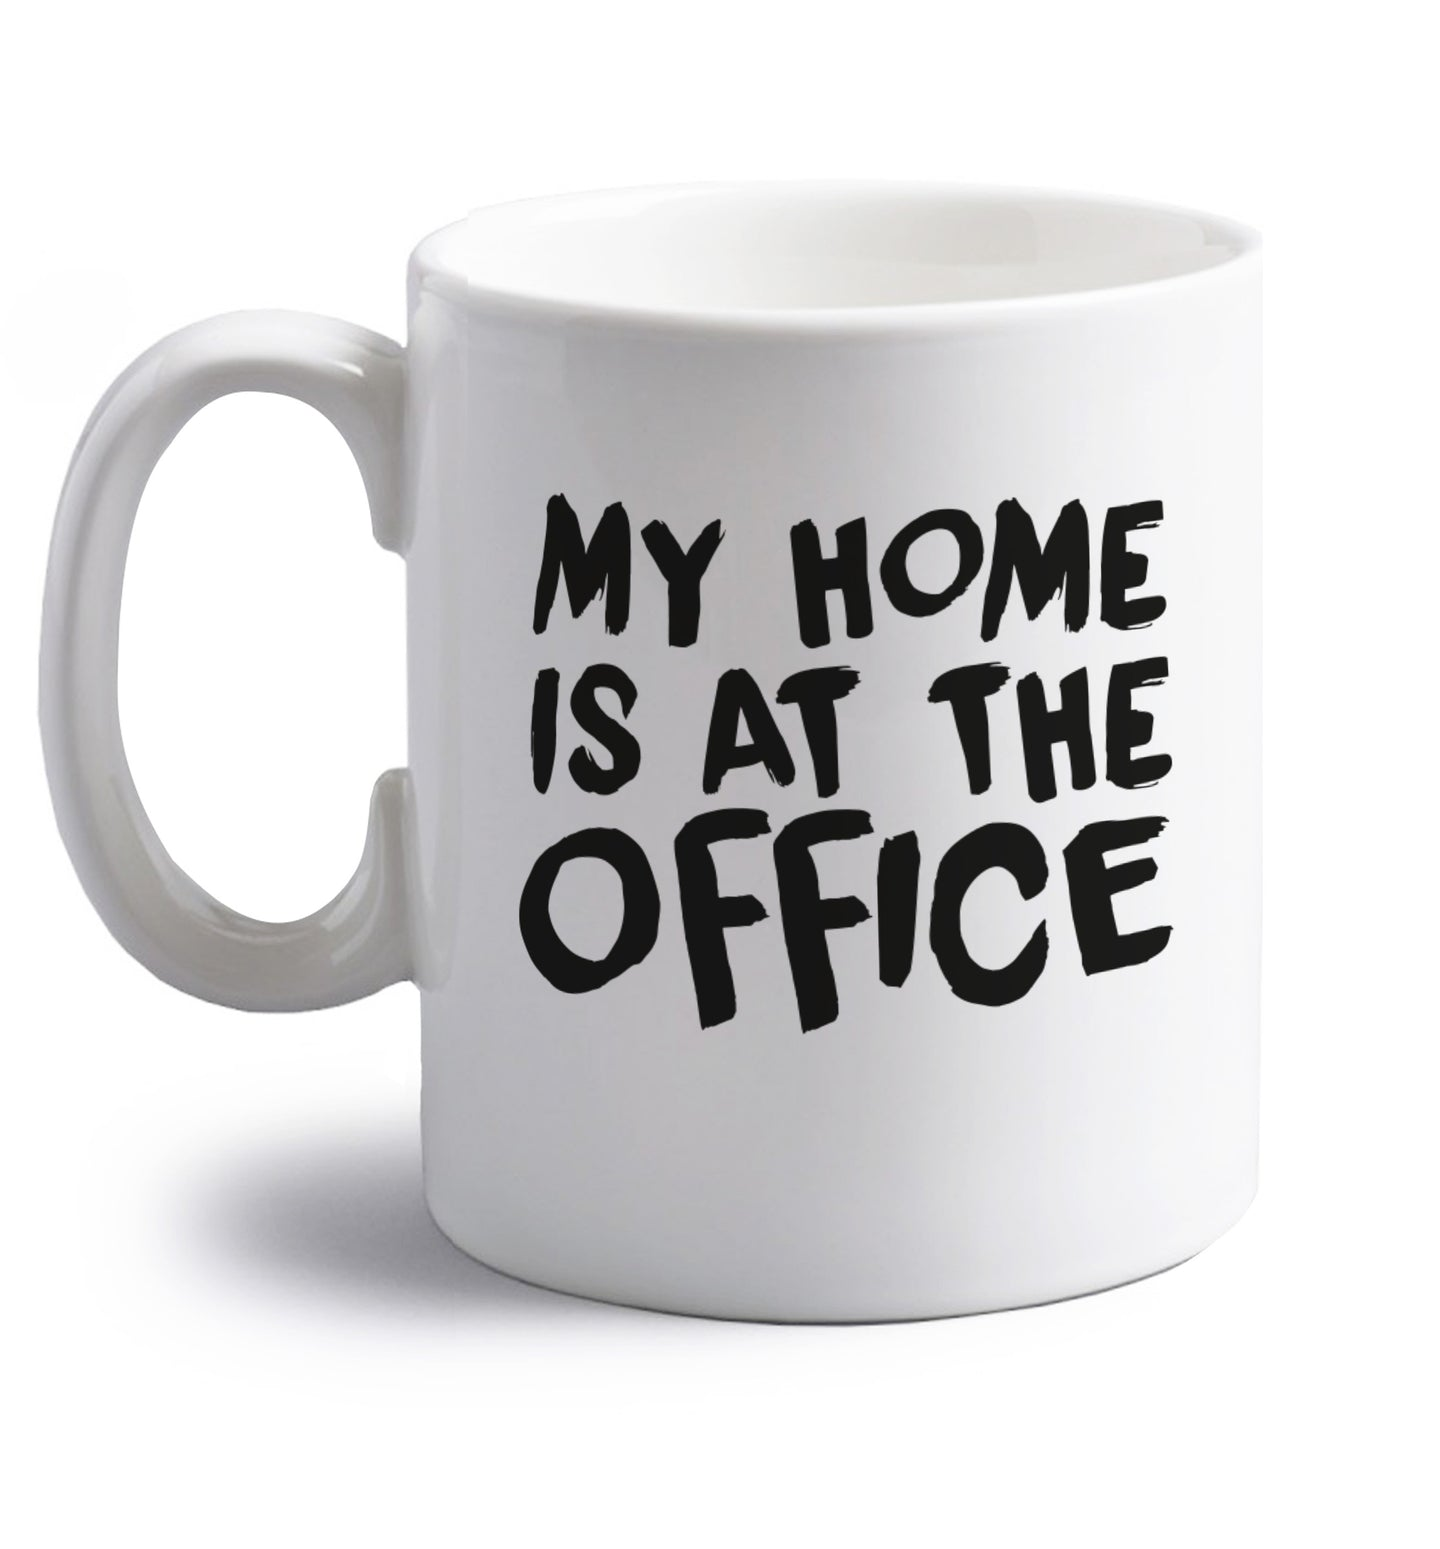 My home is at the office right handed white ceramic mug